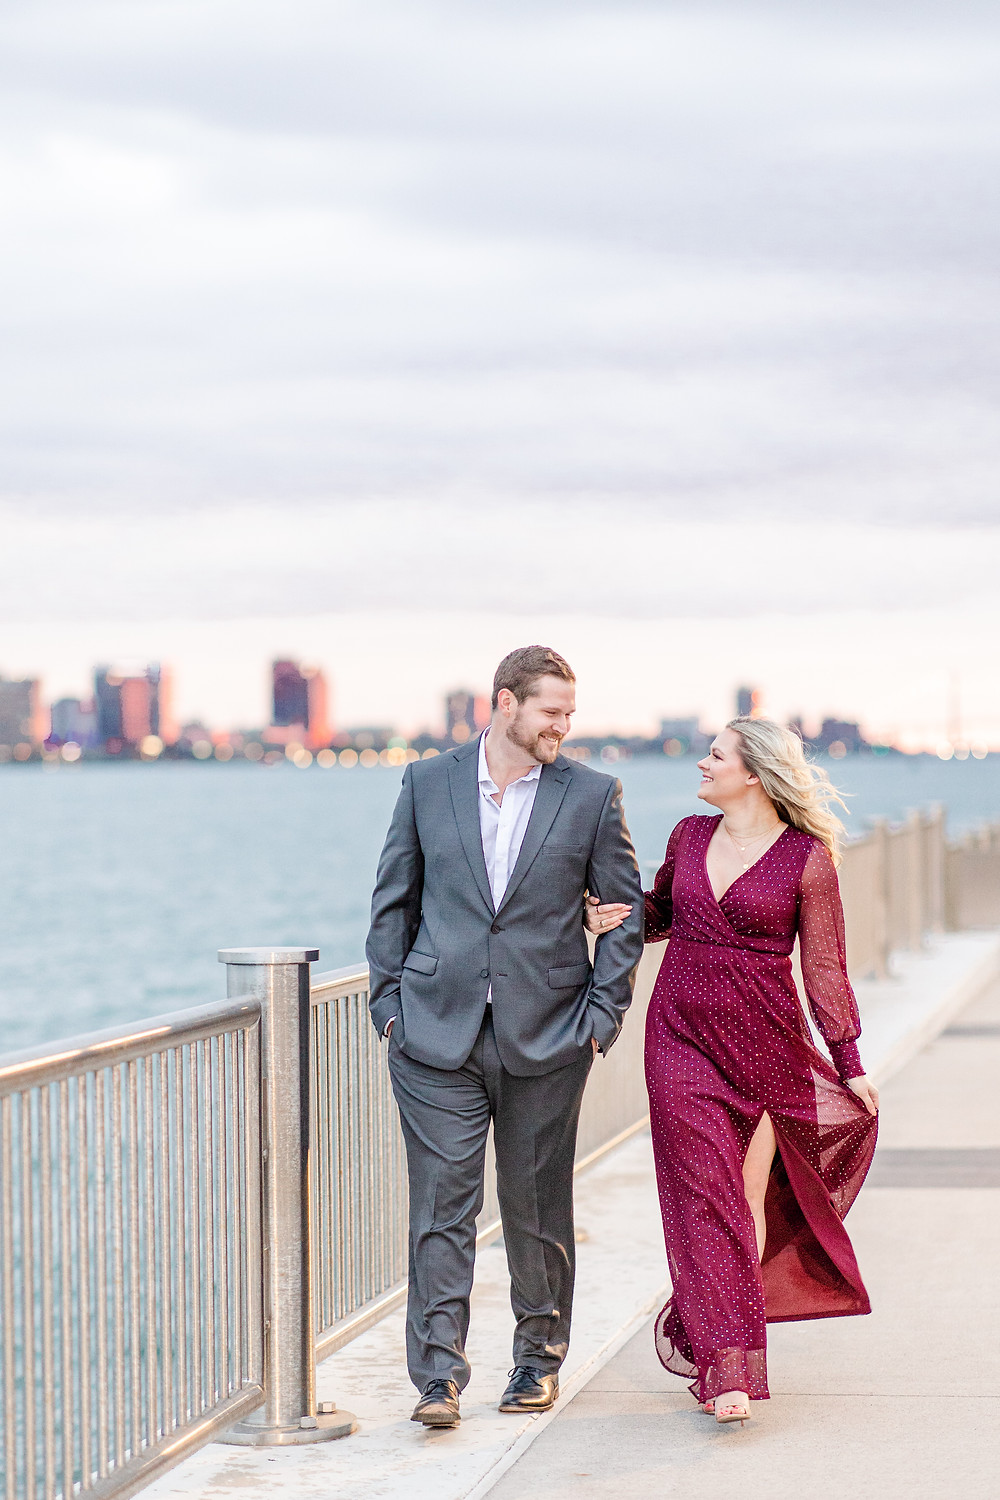 Josh and Andrea wedding photography husband and wife photographer team michigan engagement session photo shoot fiance detroit walking smiling downtown